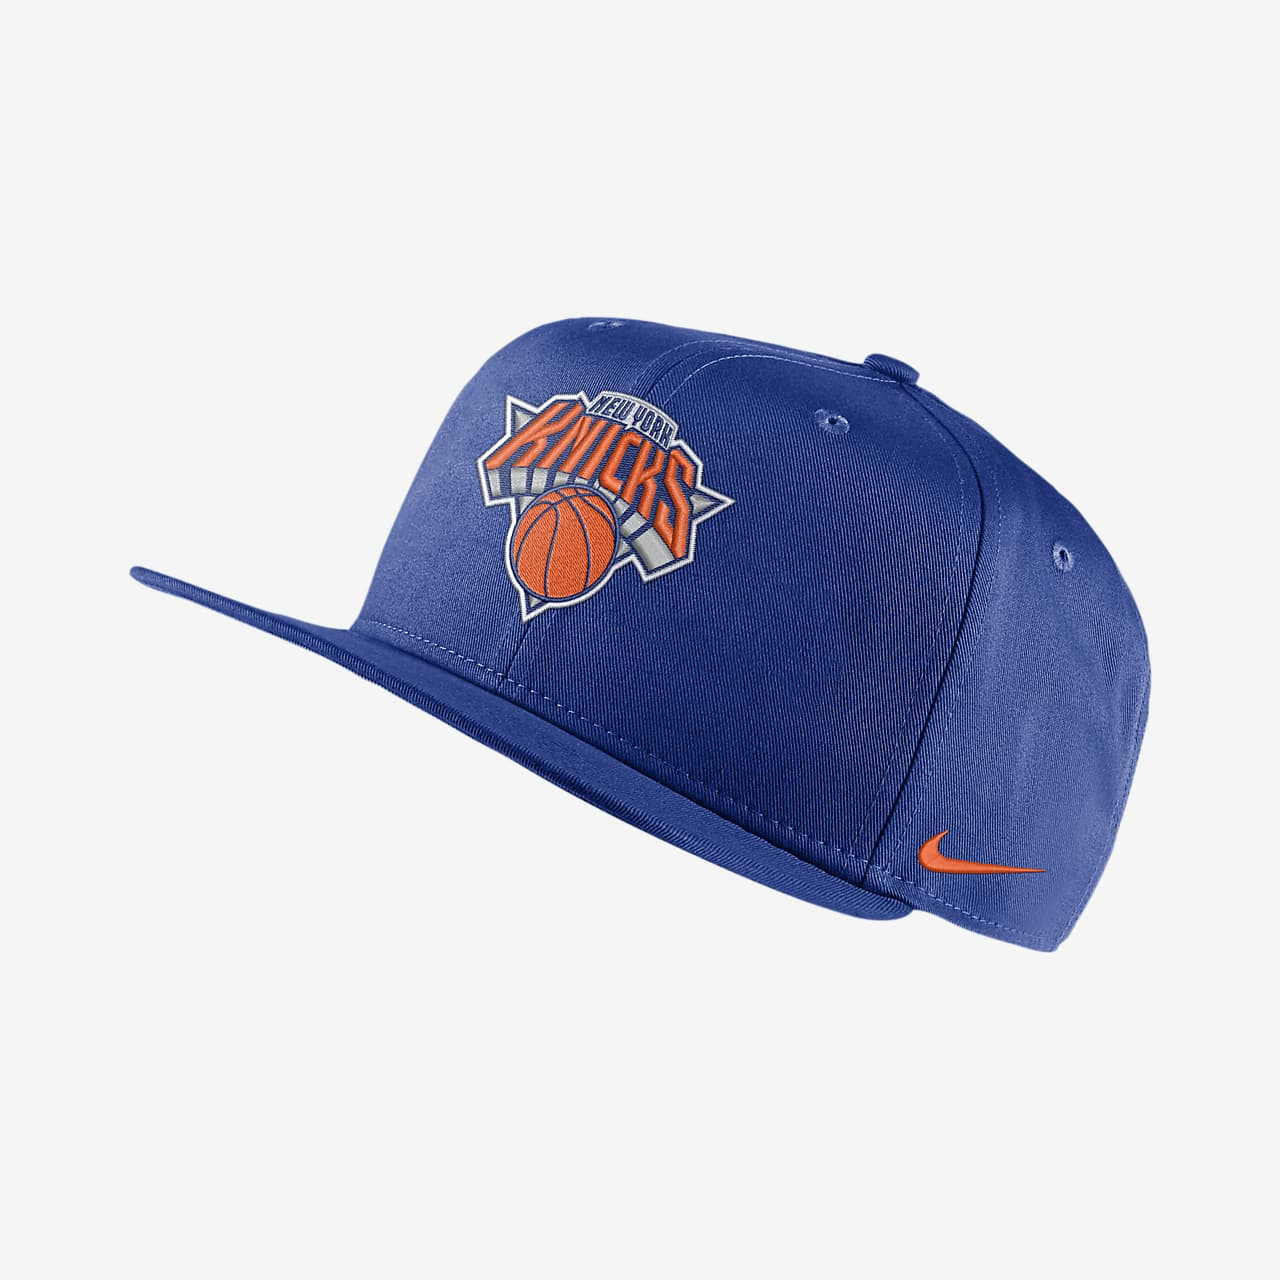 Cappello New York Knicks Nike Pro NBA